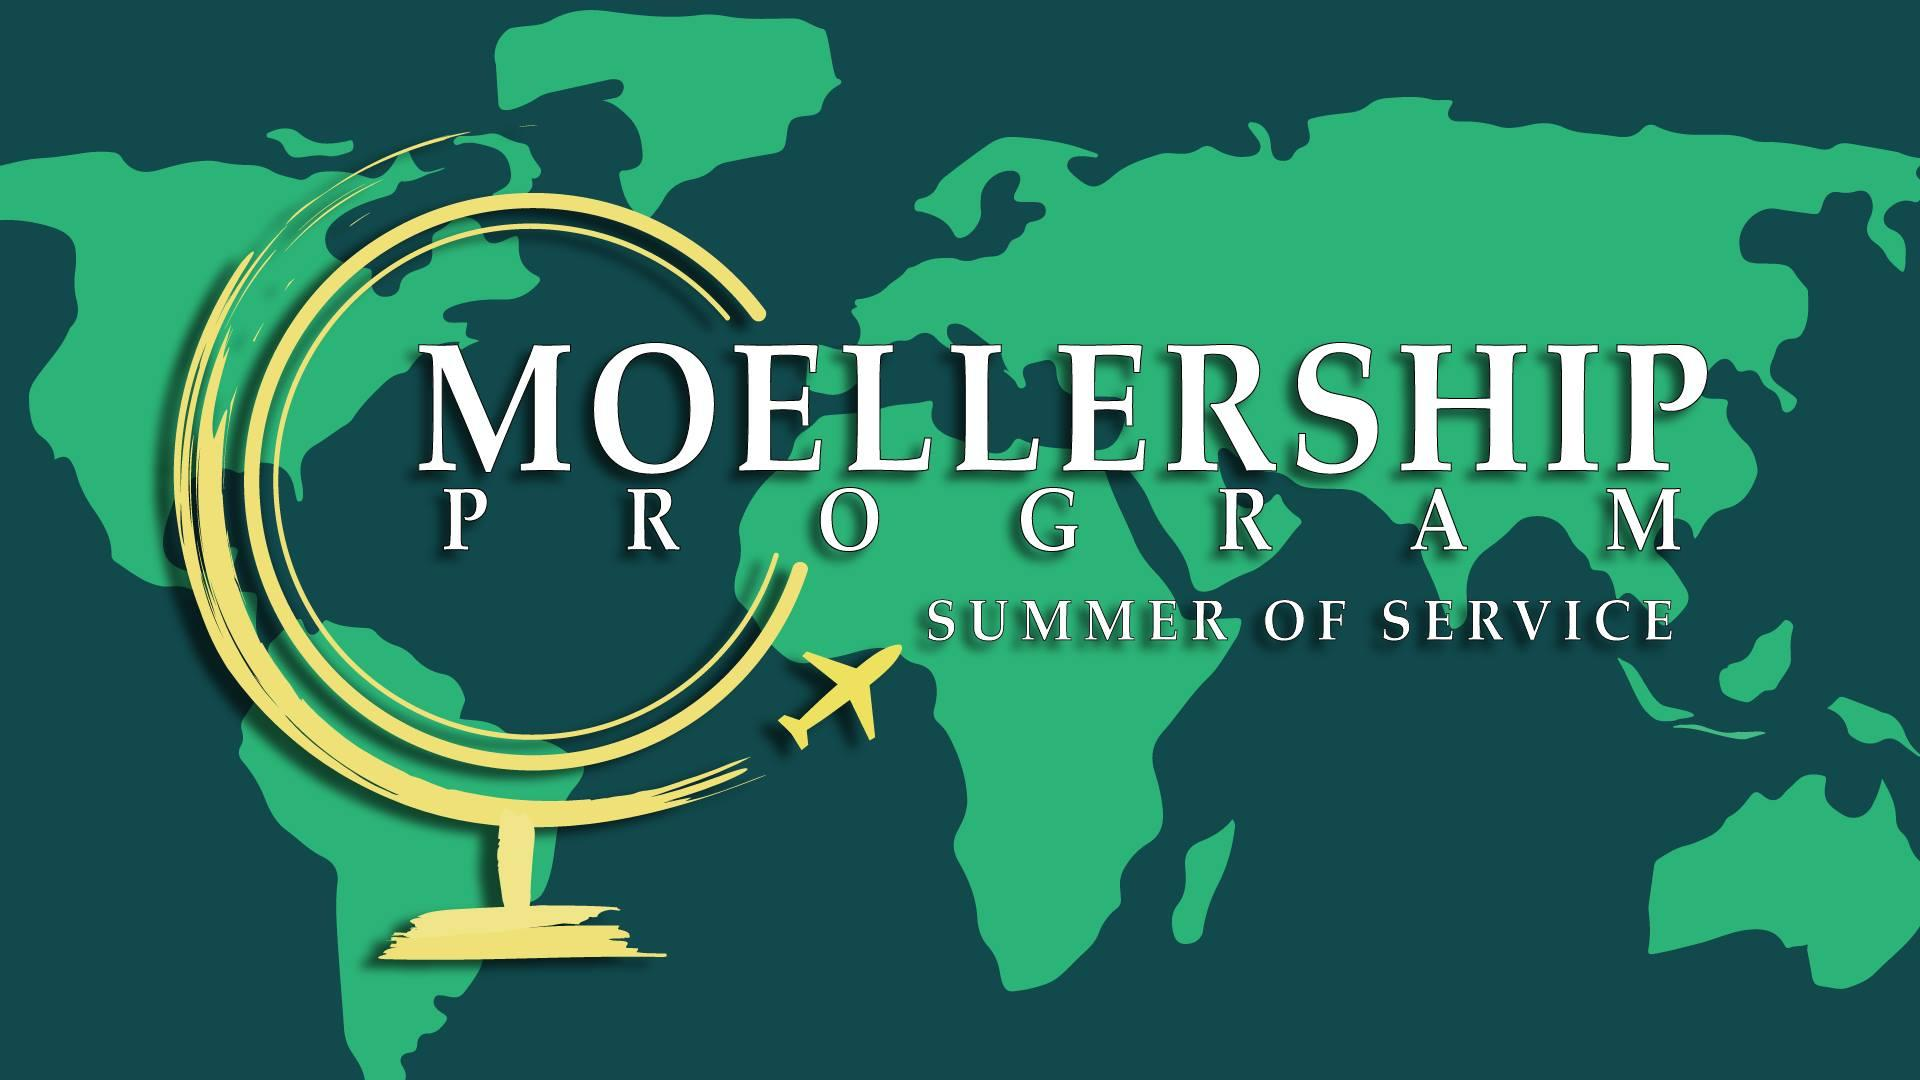 The photo is the logo for the Moellership program, which provides funding and support for students to engage in summer service projects.